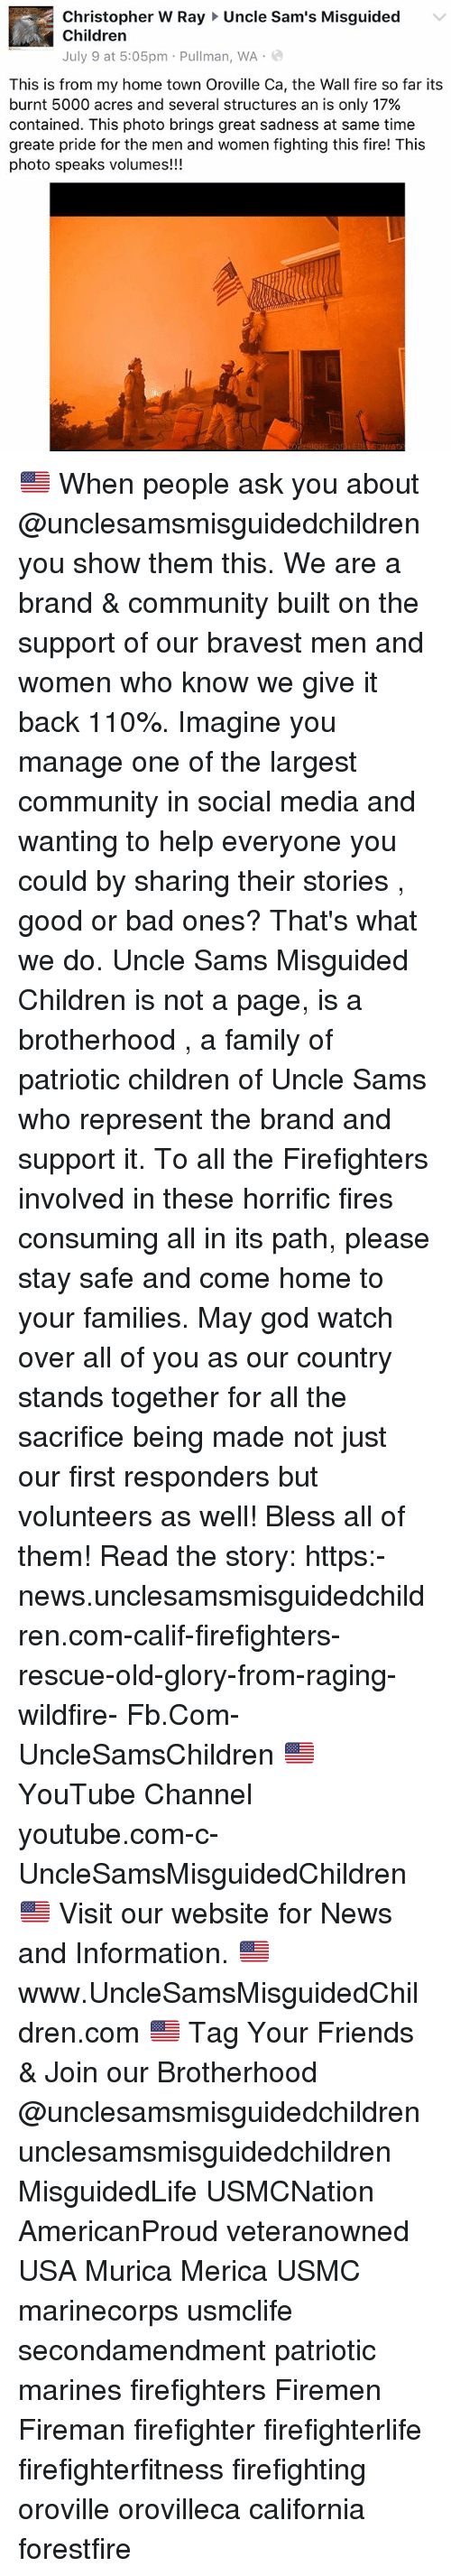 Firemen: Christopher W Ray Uncle Sam's Misguided  Children  July 9 at 5:05pm . Pullman, WA .  This is from my home town Oroville Ca, the Wall fire so far its  burnt 5000 acres and several structures an is only 17%  contained. This photo brings great sadness at same time  greate pride for the men and women fighting this fire! This  photo speaks volumes!!! 🇺🇸 When people ask you about @unclesamsmisguidedchildren you show them this. We are a brand & community built on the support of our bravest men and women who know we give it back 110%. Imagine you manage one of the largest community in social media and wanting to help everyone you could by sharing their stories , good or bad ones? That's what we do. Uncle Sams Misguided Children is not a page, is a brotherhood , a family of patriotic children of Uncle Sams who represent the brand and support it. To all the Firefighters involved in these horrific fires consuming all in its path, please stay safe and come home to your families. May god watch over all of you as our country stands together for all the sacrifice being made not just our first responders but volunteers as well! Bless all of them! Read the story: https:-news.unclesamsmisguidedchildren.com-calif-firefighters-rescue-old-glory-from-raging-wildfire- Fb.Com-UncleSamsChildren 🇺🇸YouTube Channel youtube.com-c-UncleSamsMisguidedChildren 🇺🇸 Visit our website for News and Information. 🇺🇸 www.UncleSamsMisguidedChildren.com 🇺🇸 Tag Your Friends & Join our Brotherhood @unclesamsmisguidedchildren unclesamsmisguidedchildren MisguidedLife USMCNation AmericanProud veteranowned USA Murica Merica USMC marinecorps usmclife secondamendment patriotic marines firefighters Firemen Fireman firefighter firefighterlife firefighterfitness firefighting oroville orovilleca california forestfire